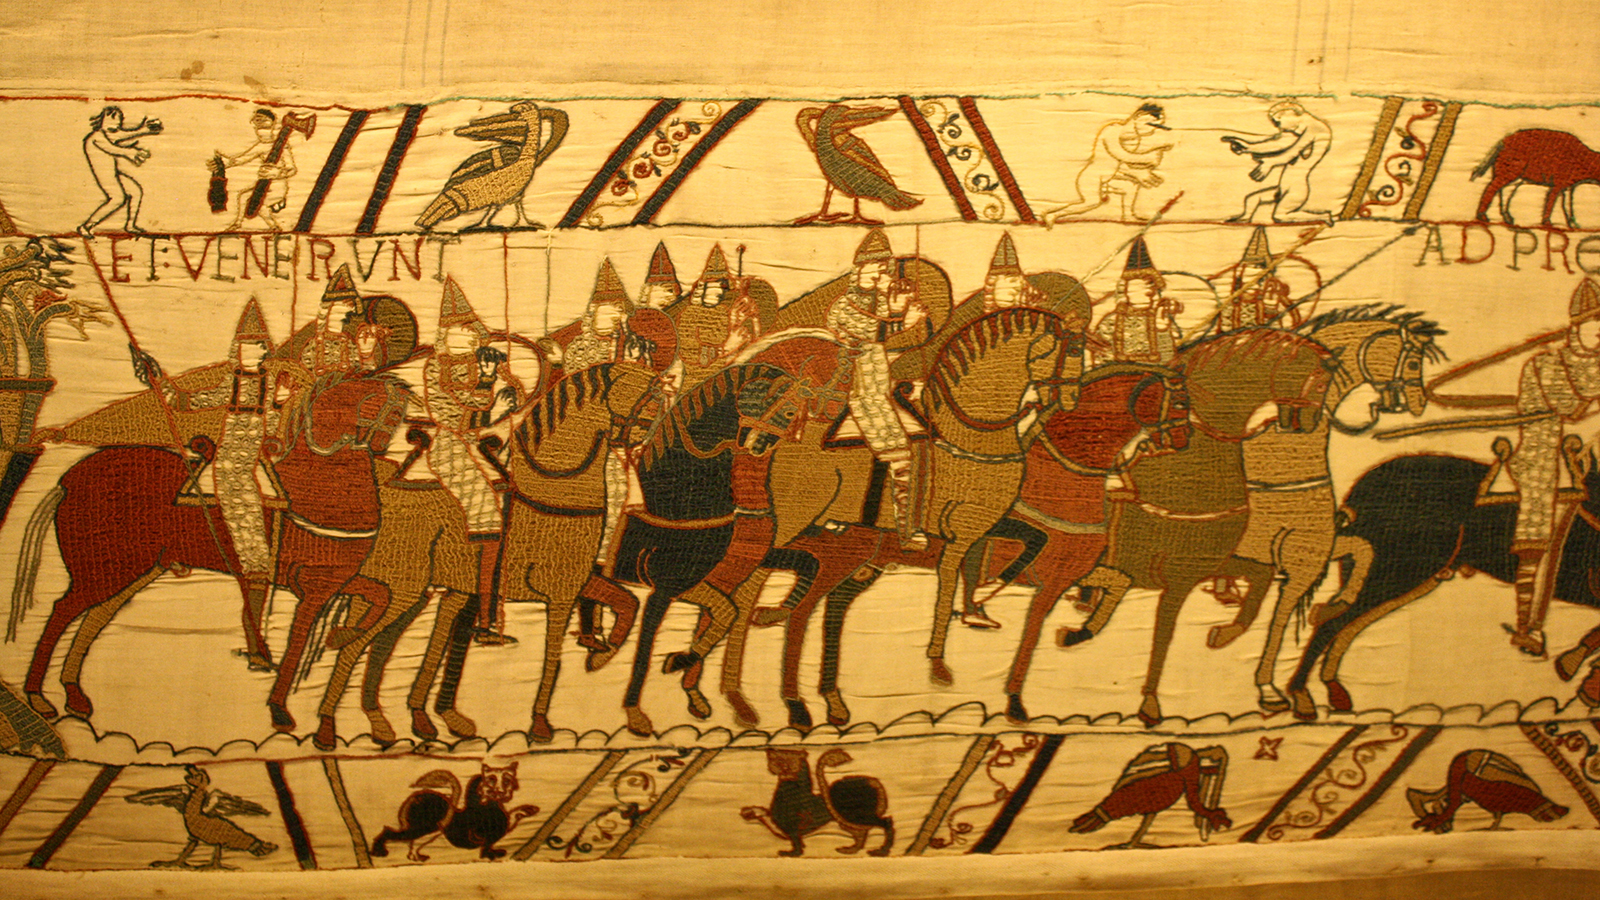 Scene 48 of the Bayeux Tapestry